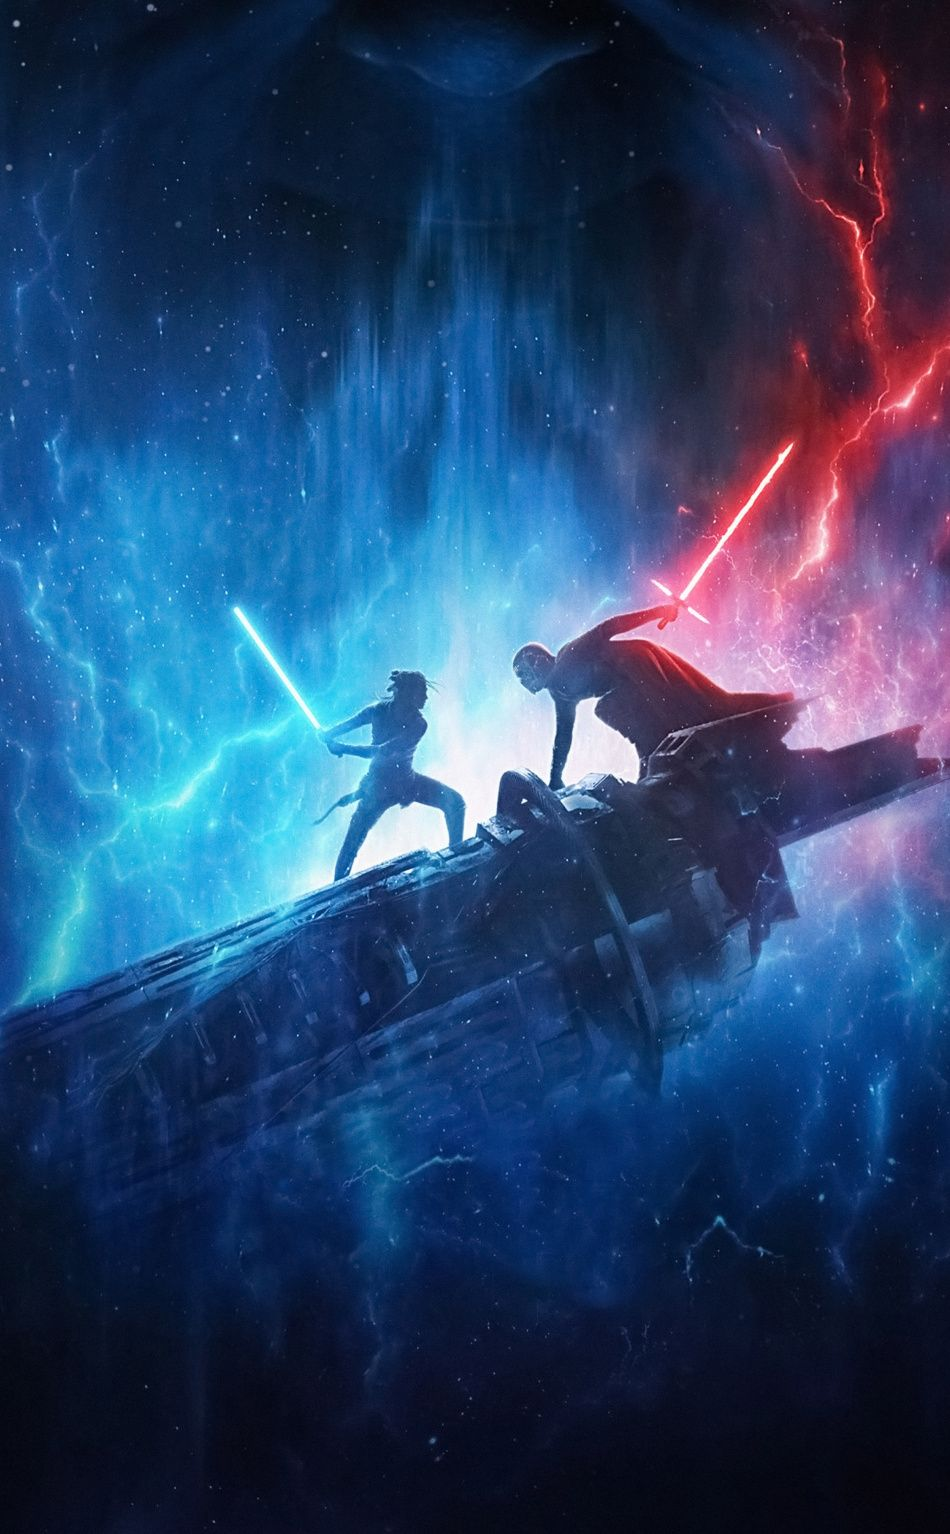 950x1534 Star Wars The Rise Of Skywalker Kylo Ren And Rey 2019 Movie Wallpaper Star Wars Wallpaper Iphone Star Wars Poster Star Wars Wallpaper